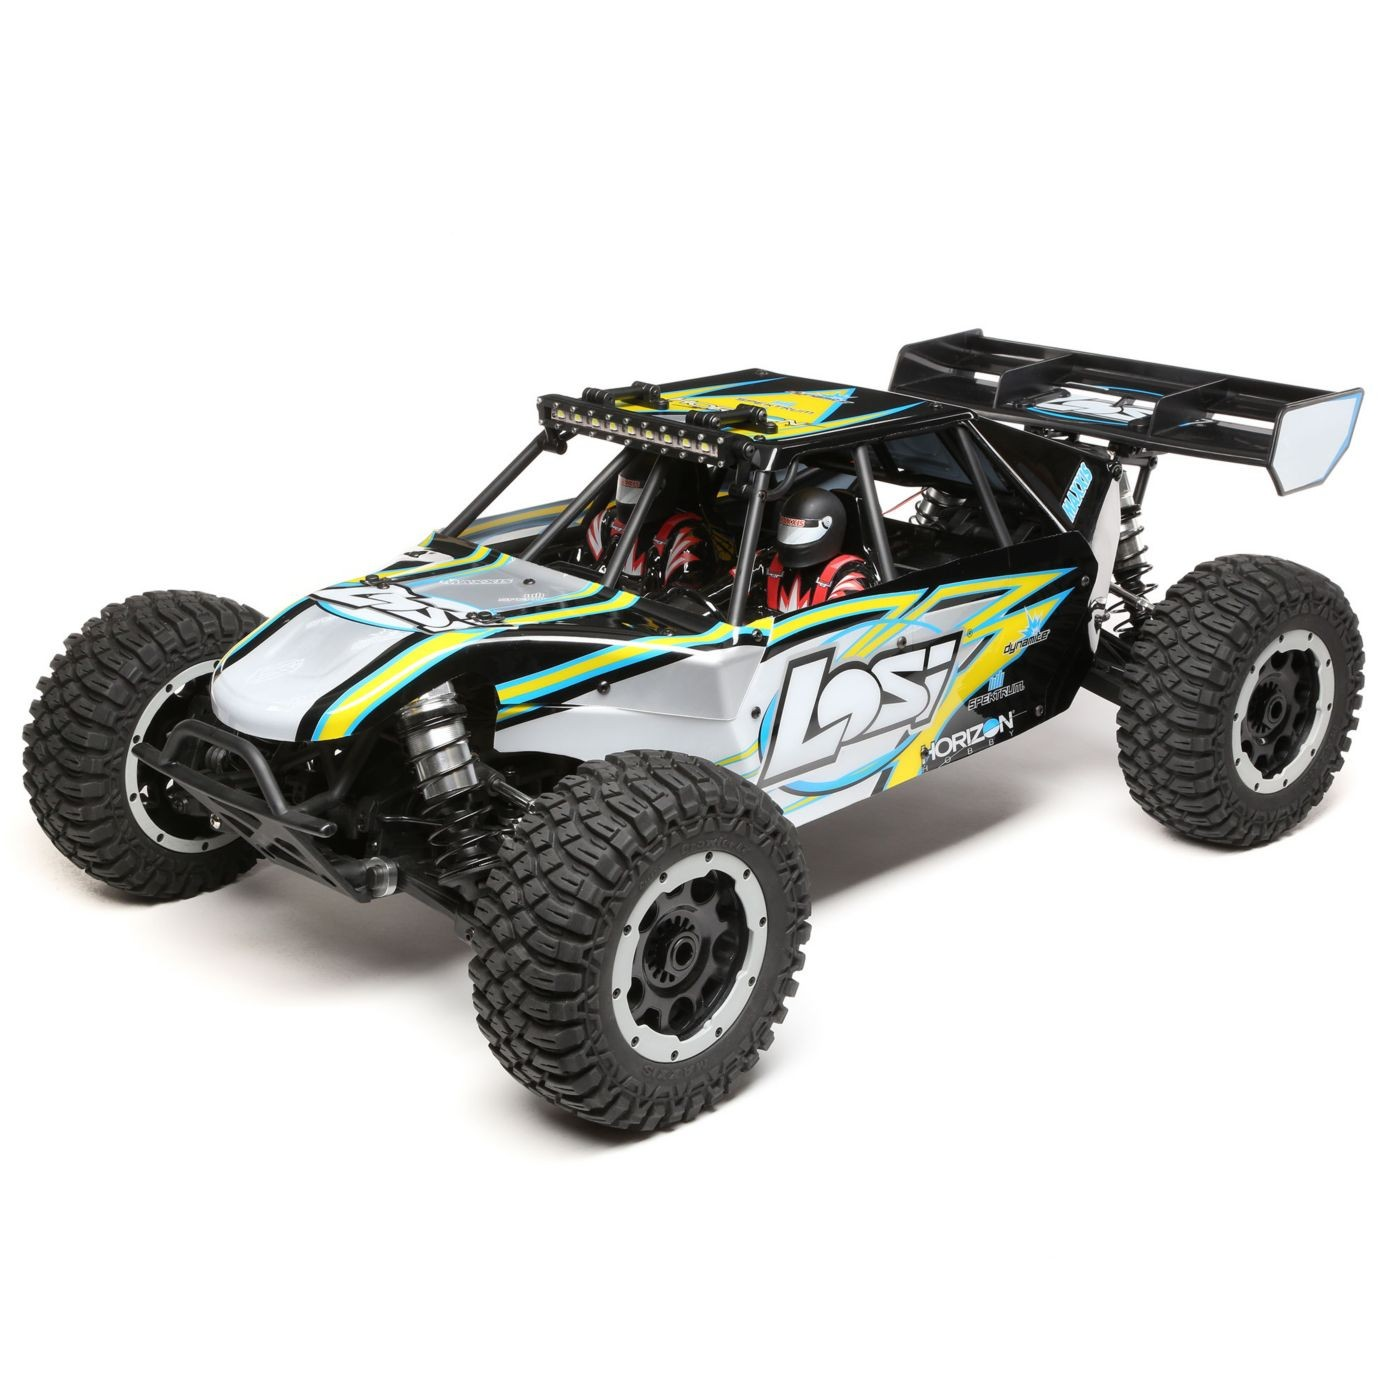 Losi Desert Buggy XL E 4WD 1 5 Electric RTR with AVC